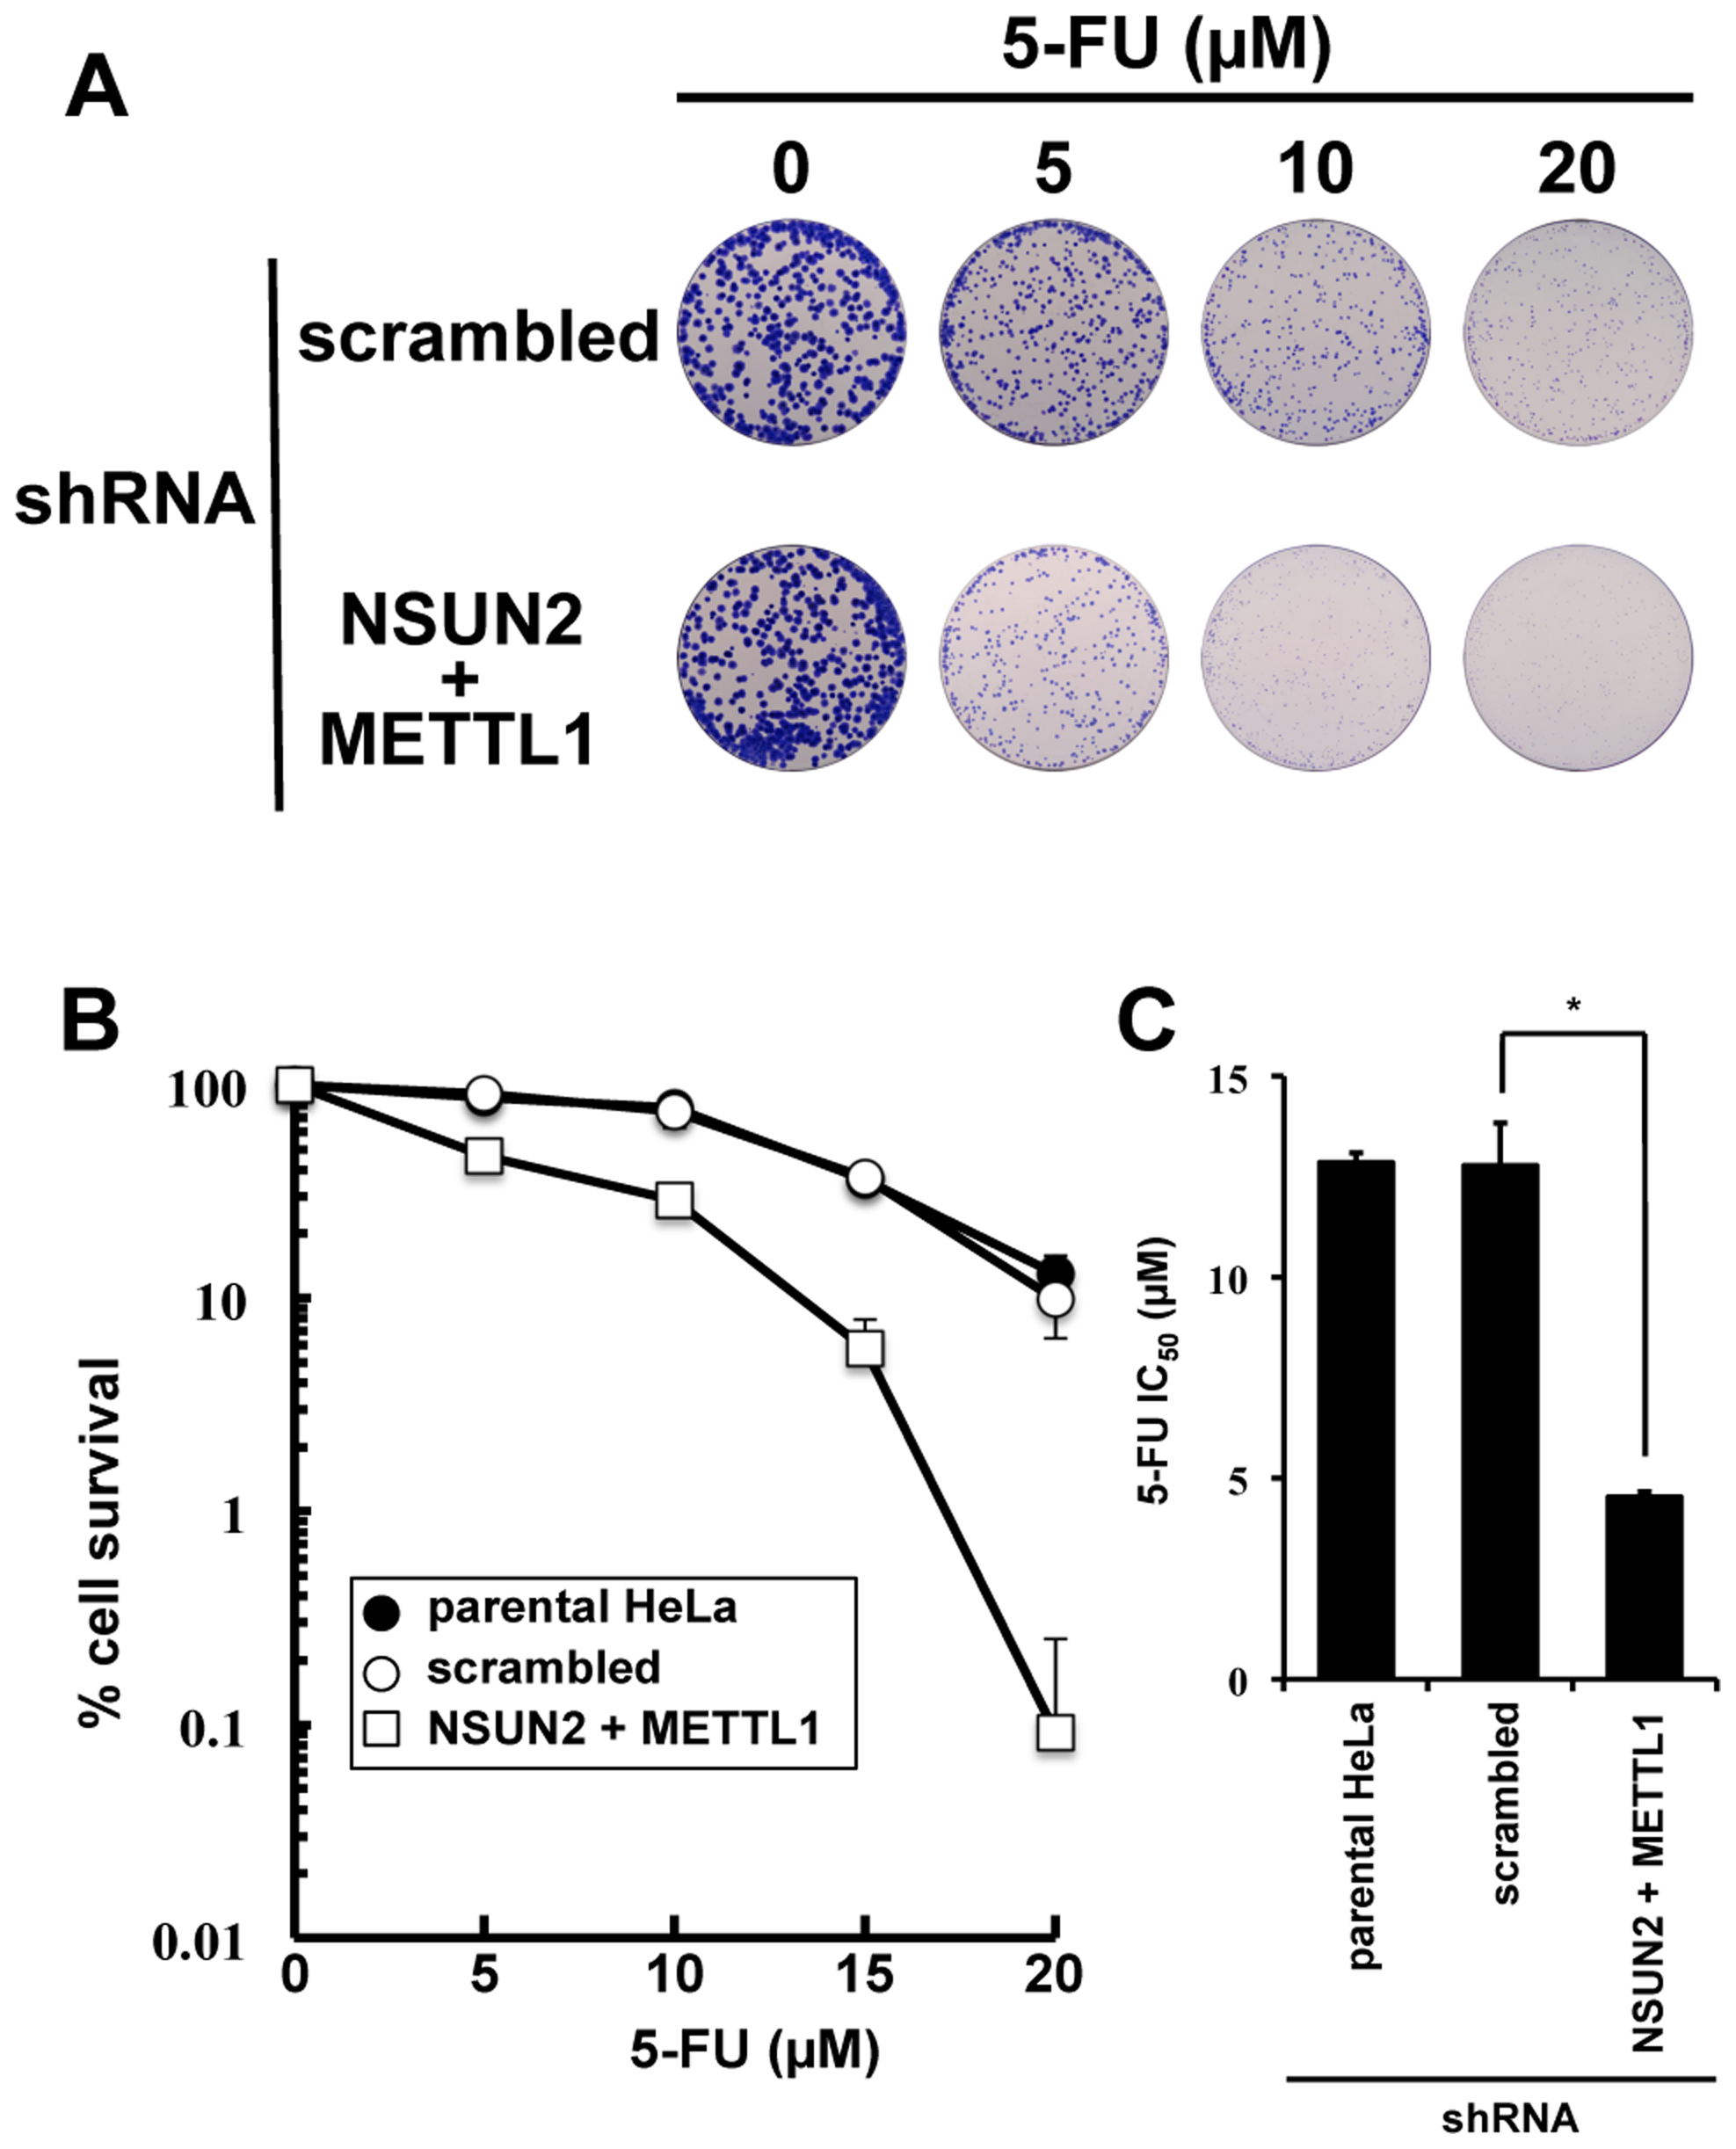 Colony formation assay showing synergistic effects of NSUN2 and METTL1 double knock down and 5-FU-treatment.